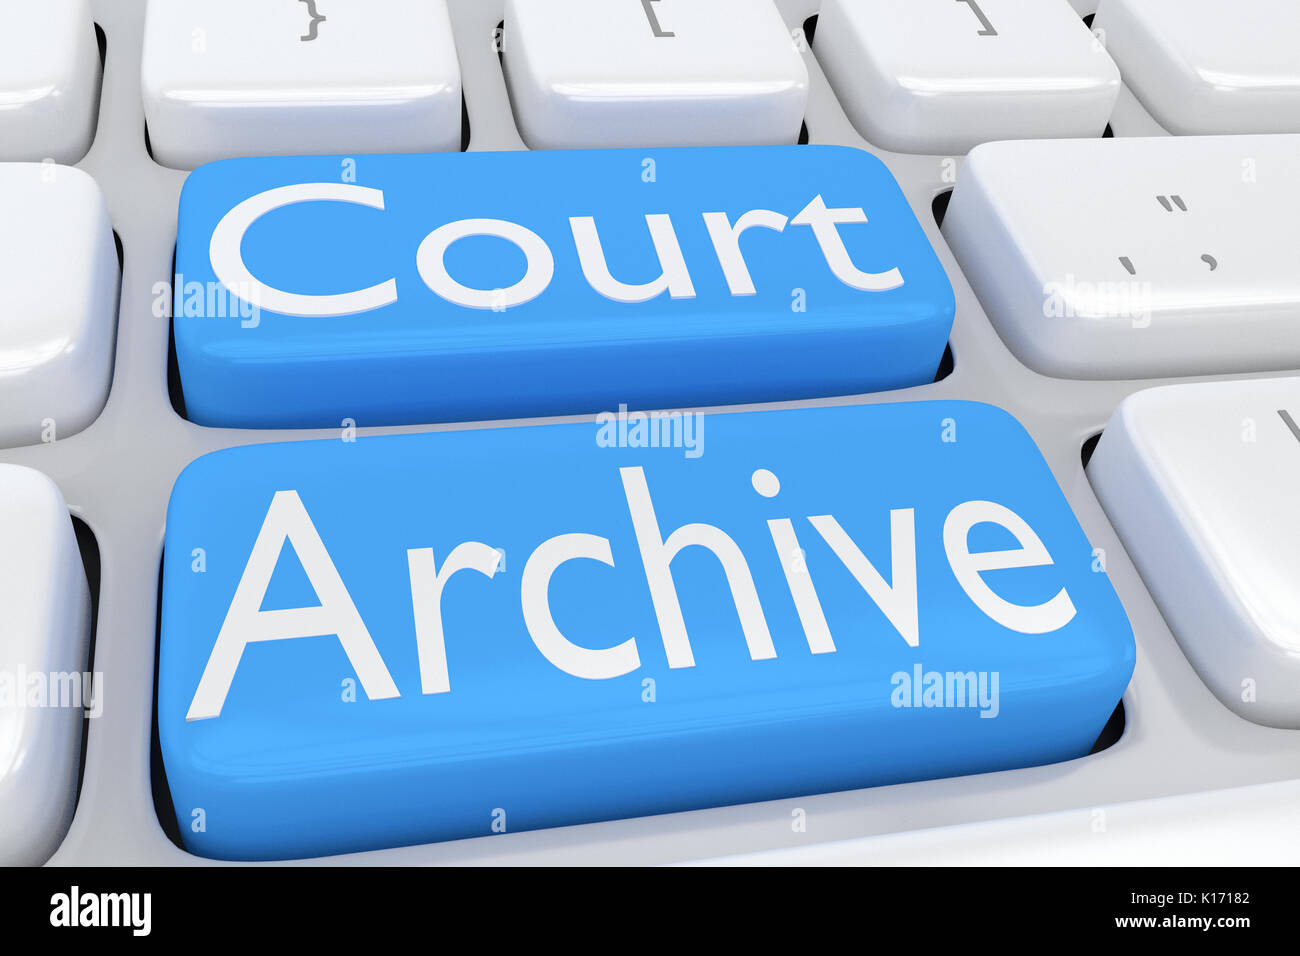 3D illustration of computer keyboard with the script 'Court Archive' on two adjacent pale blue buttons - Stock Image